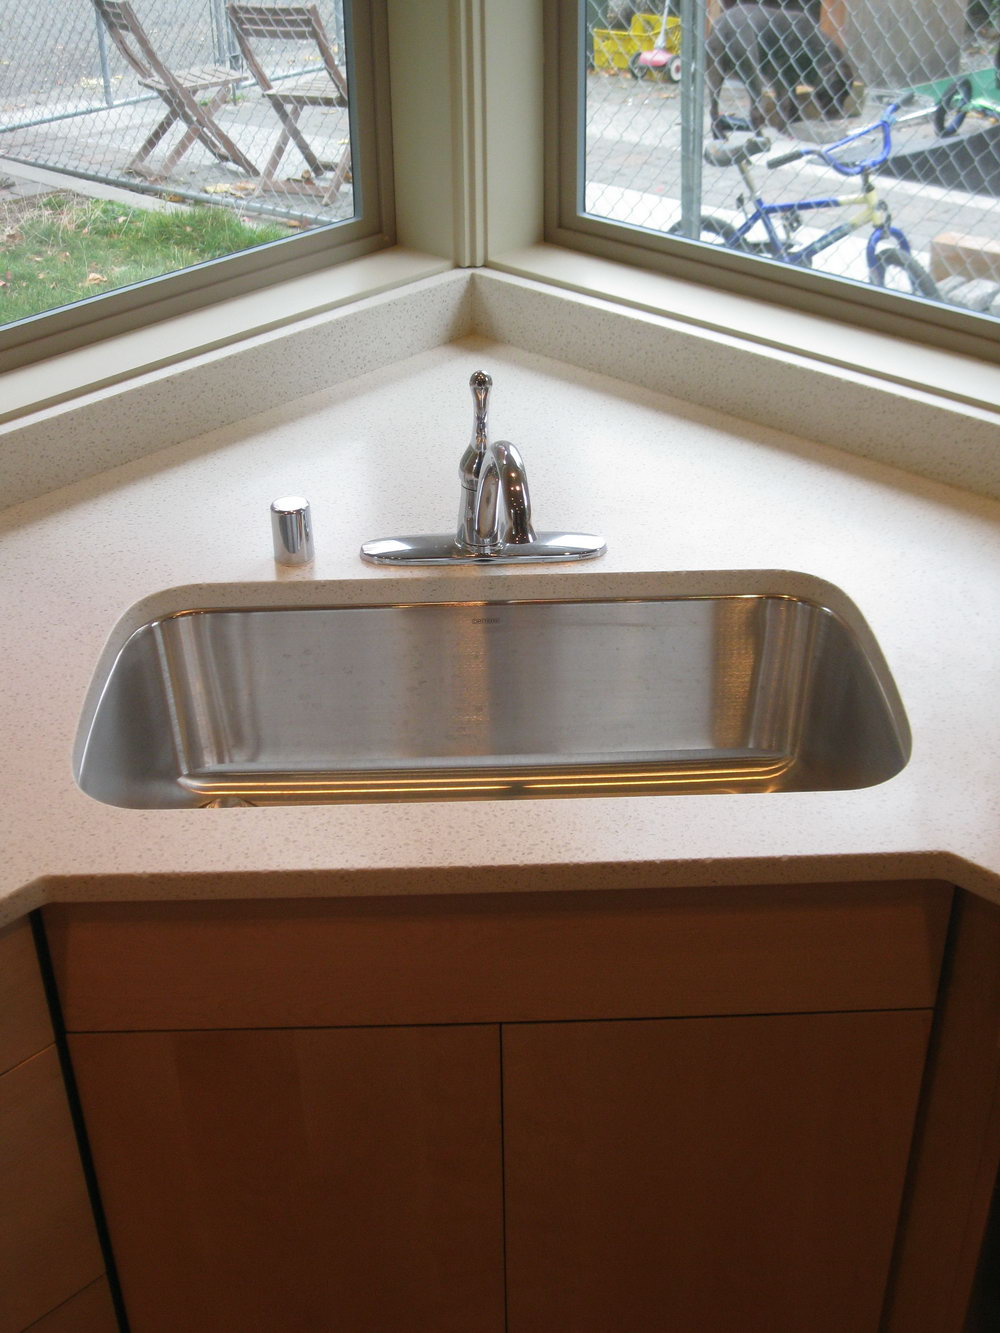 Ikea Corner Kitchen Sink Cabinet